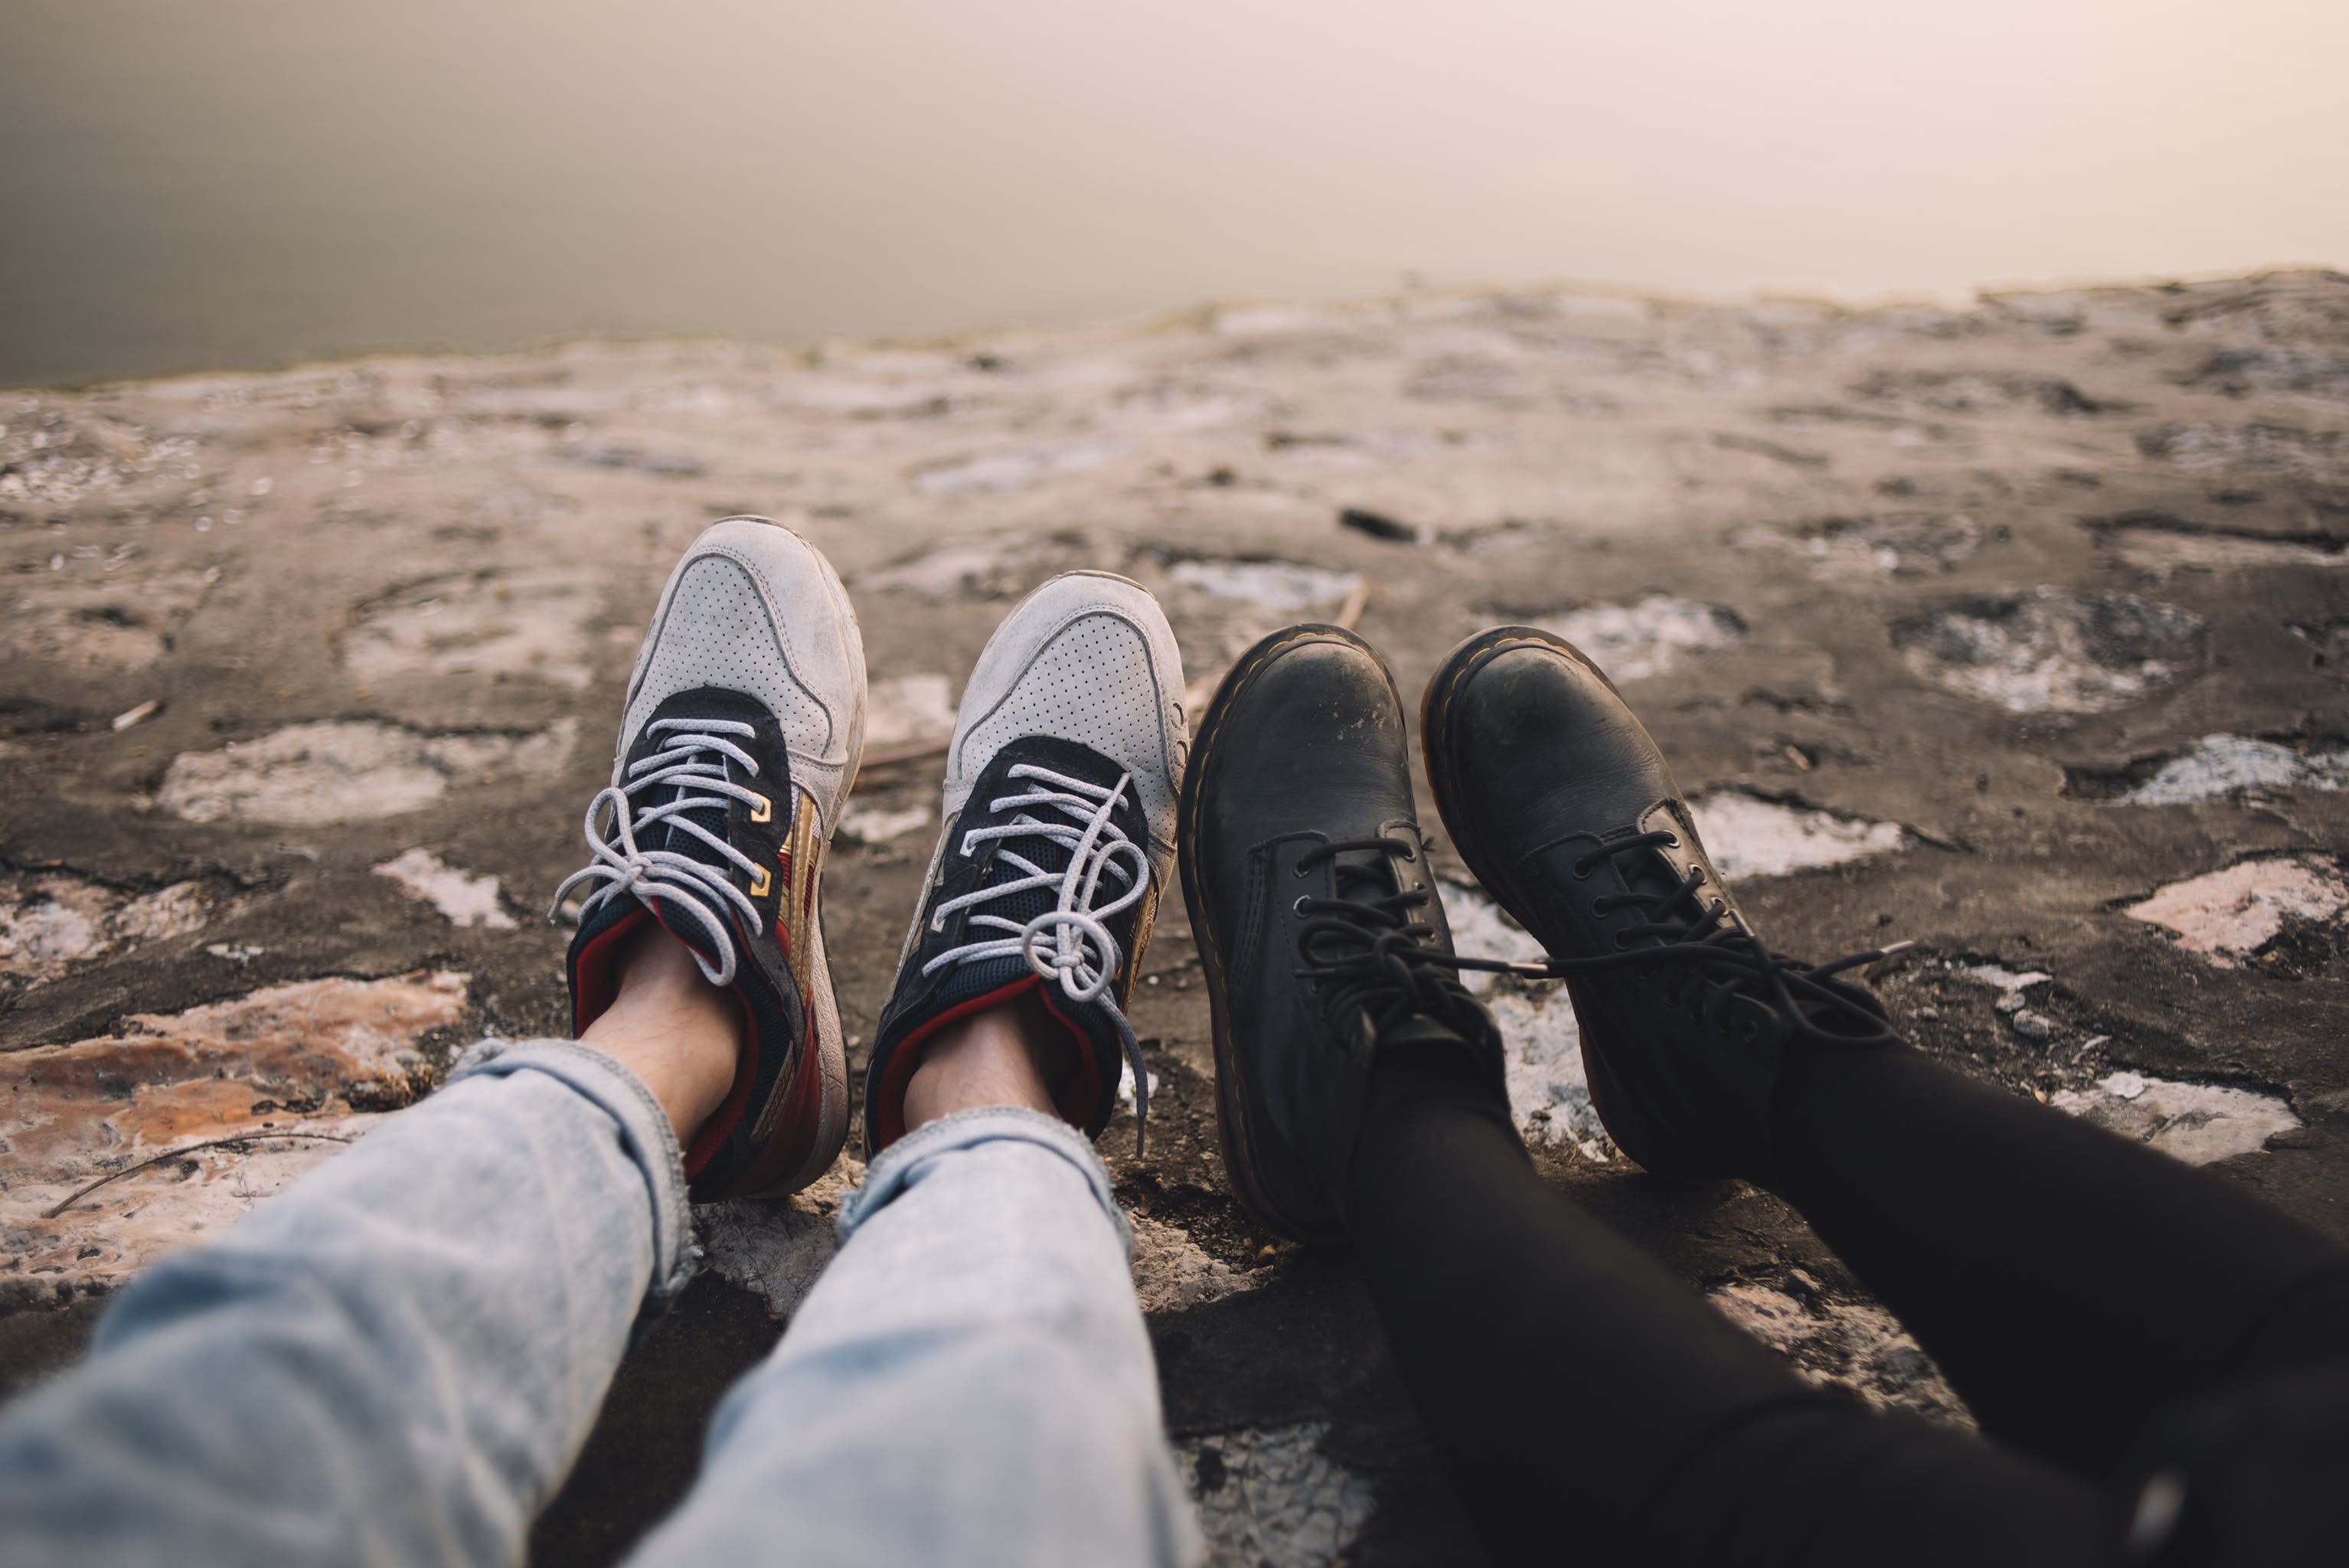 Two Person Wearing Pants and Shoes Sits on Ground at Daytime